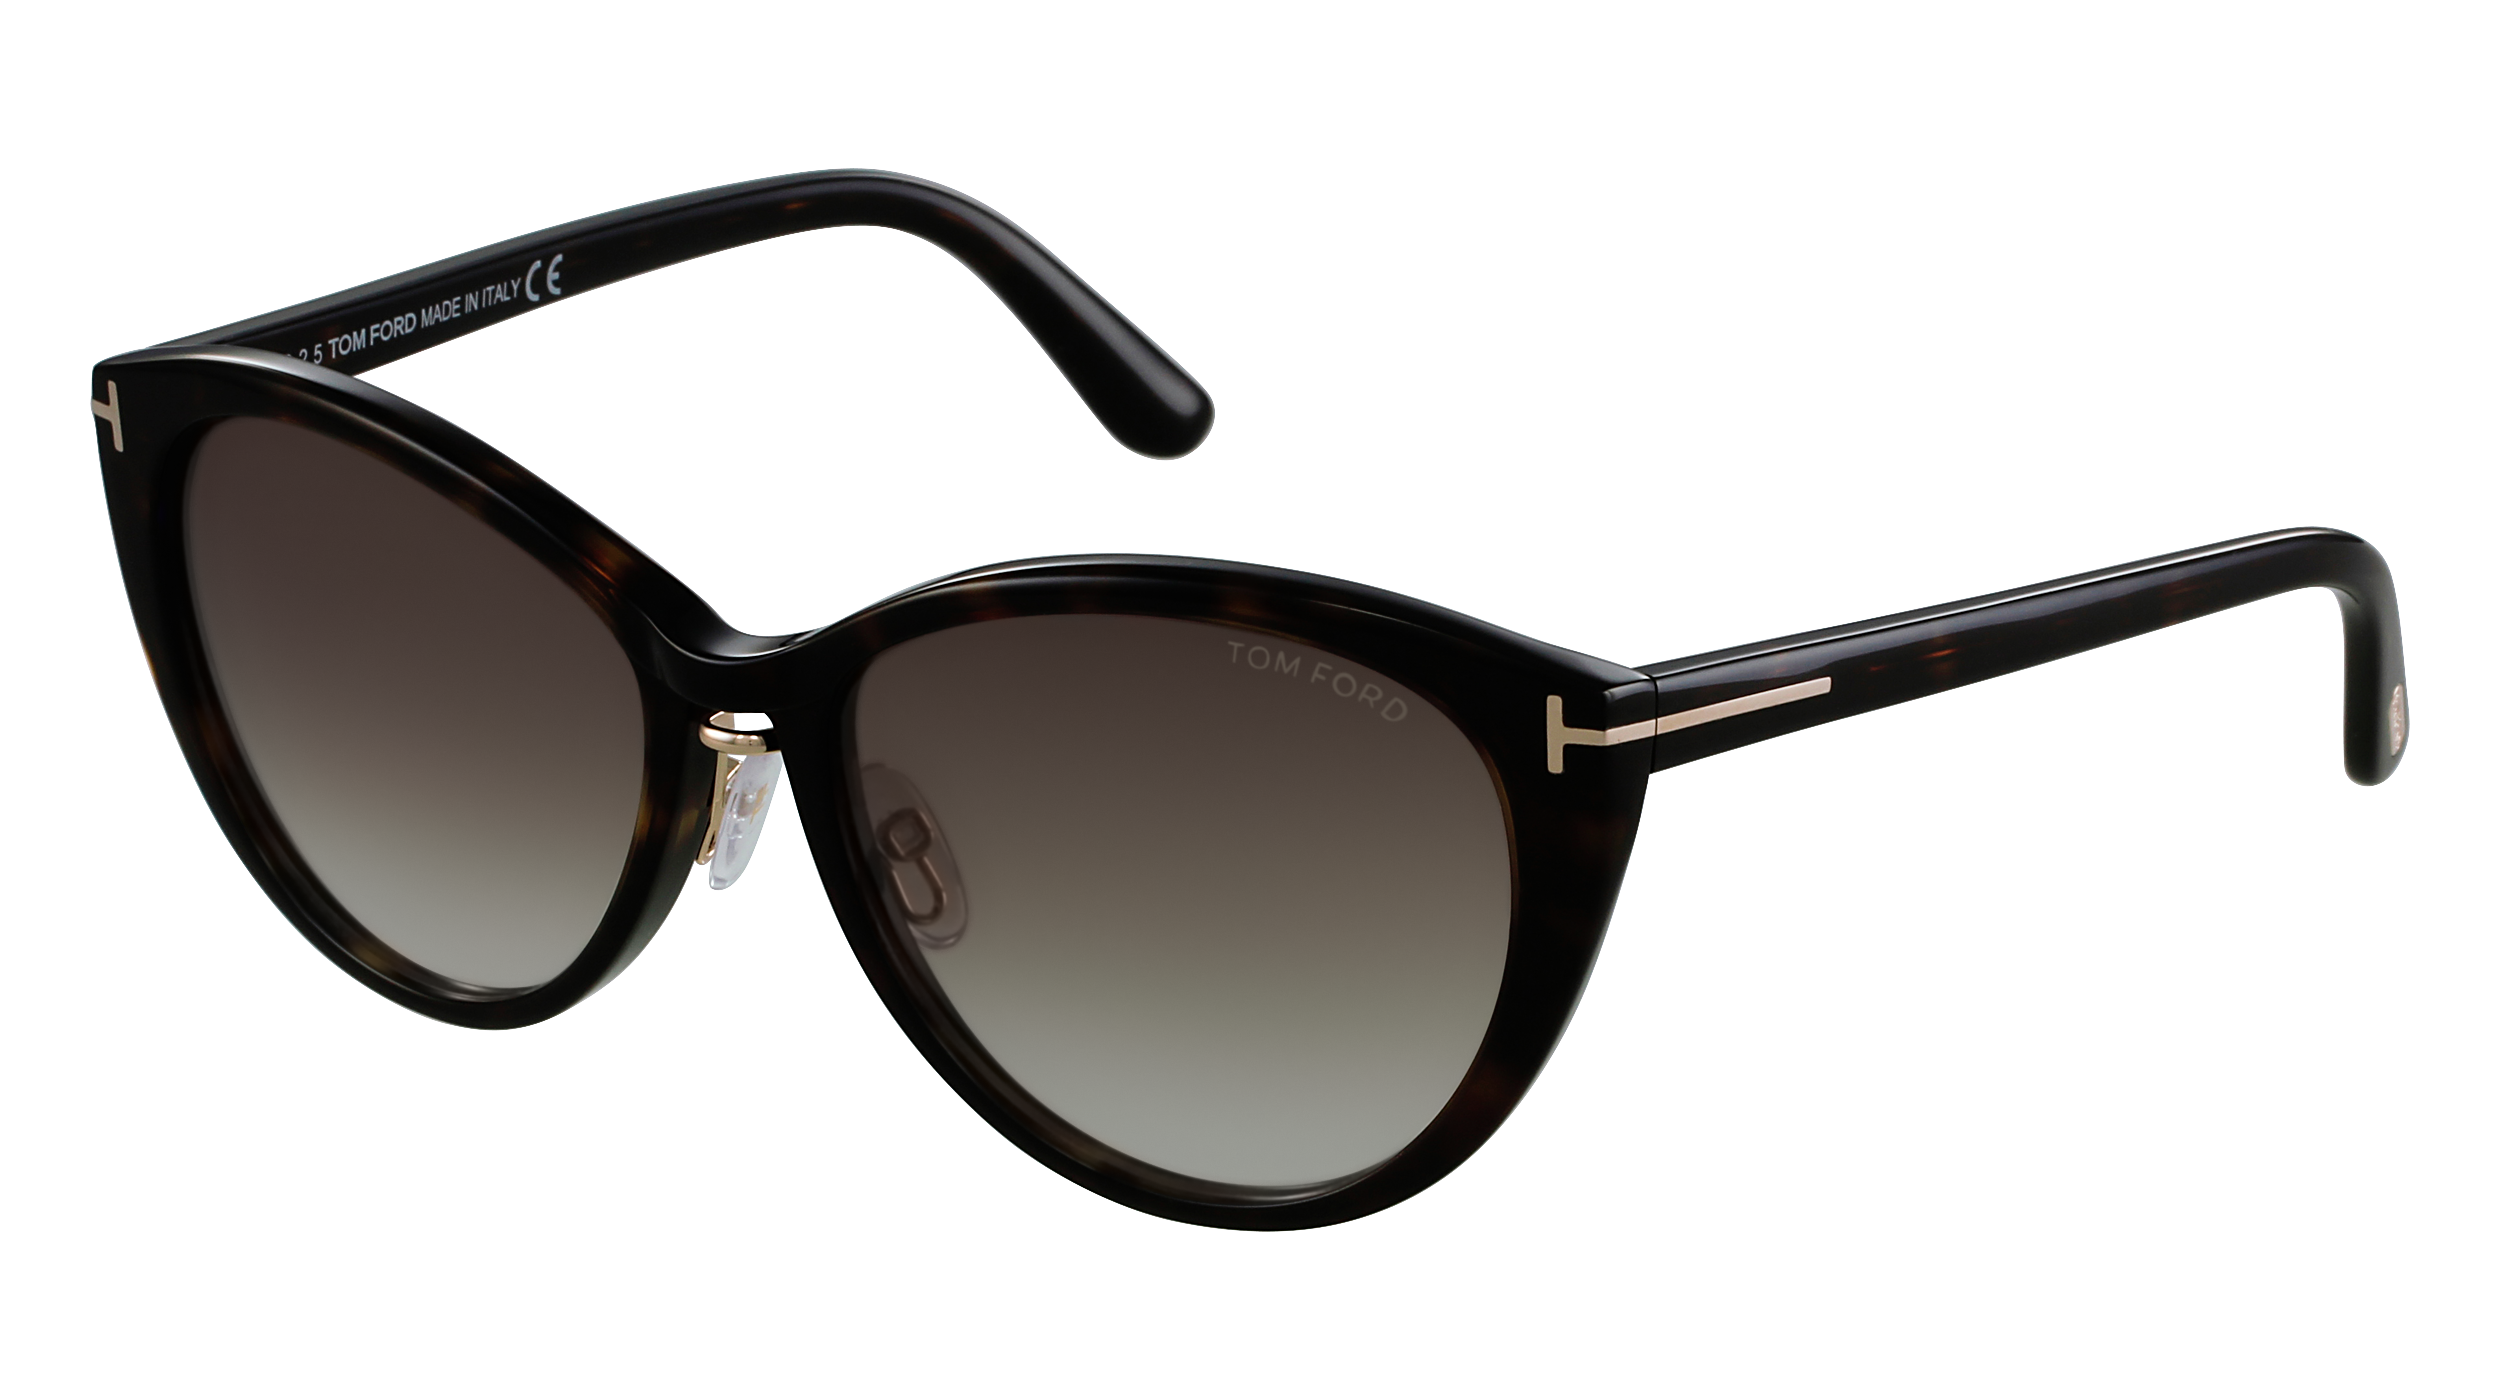 Tom Ford FT0345-S-52F-0-0-0